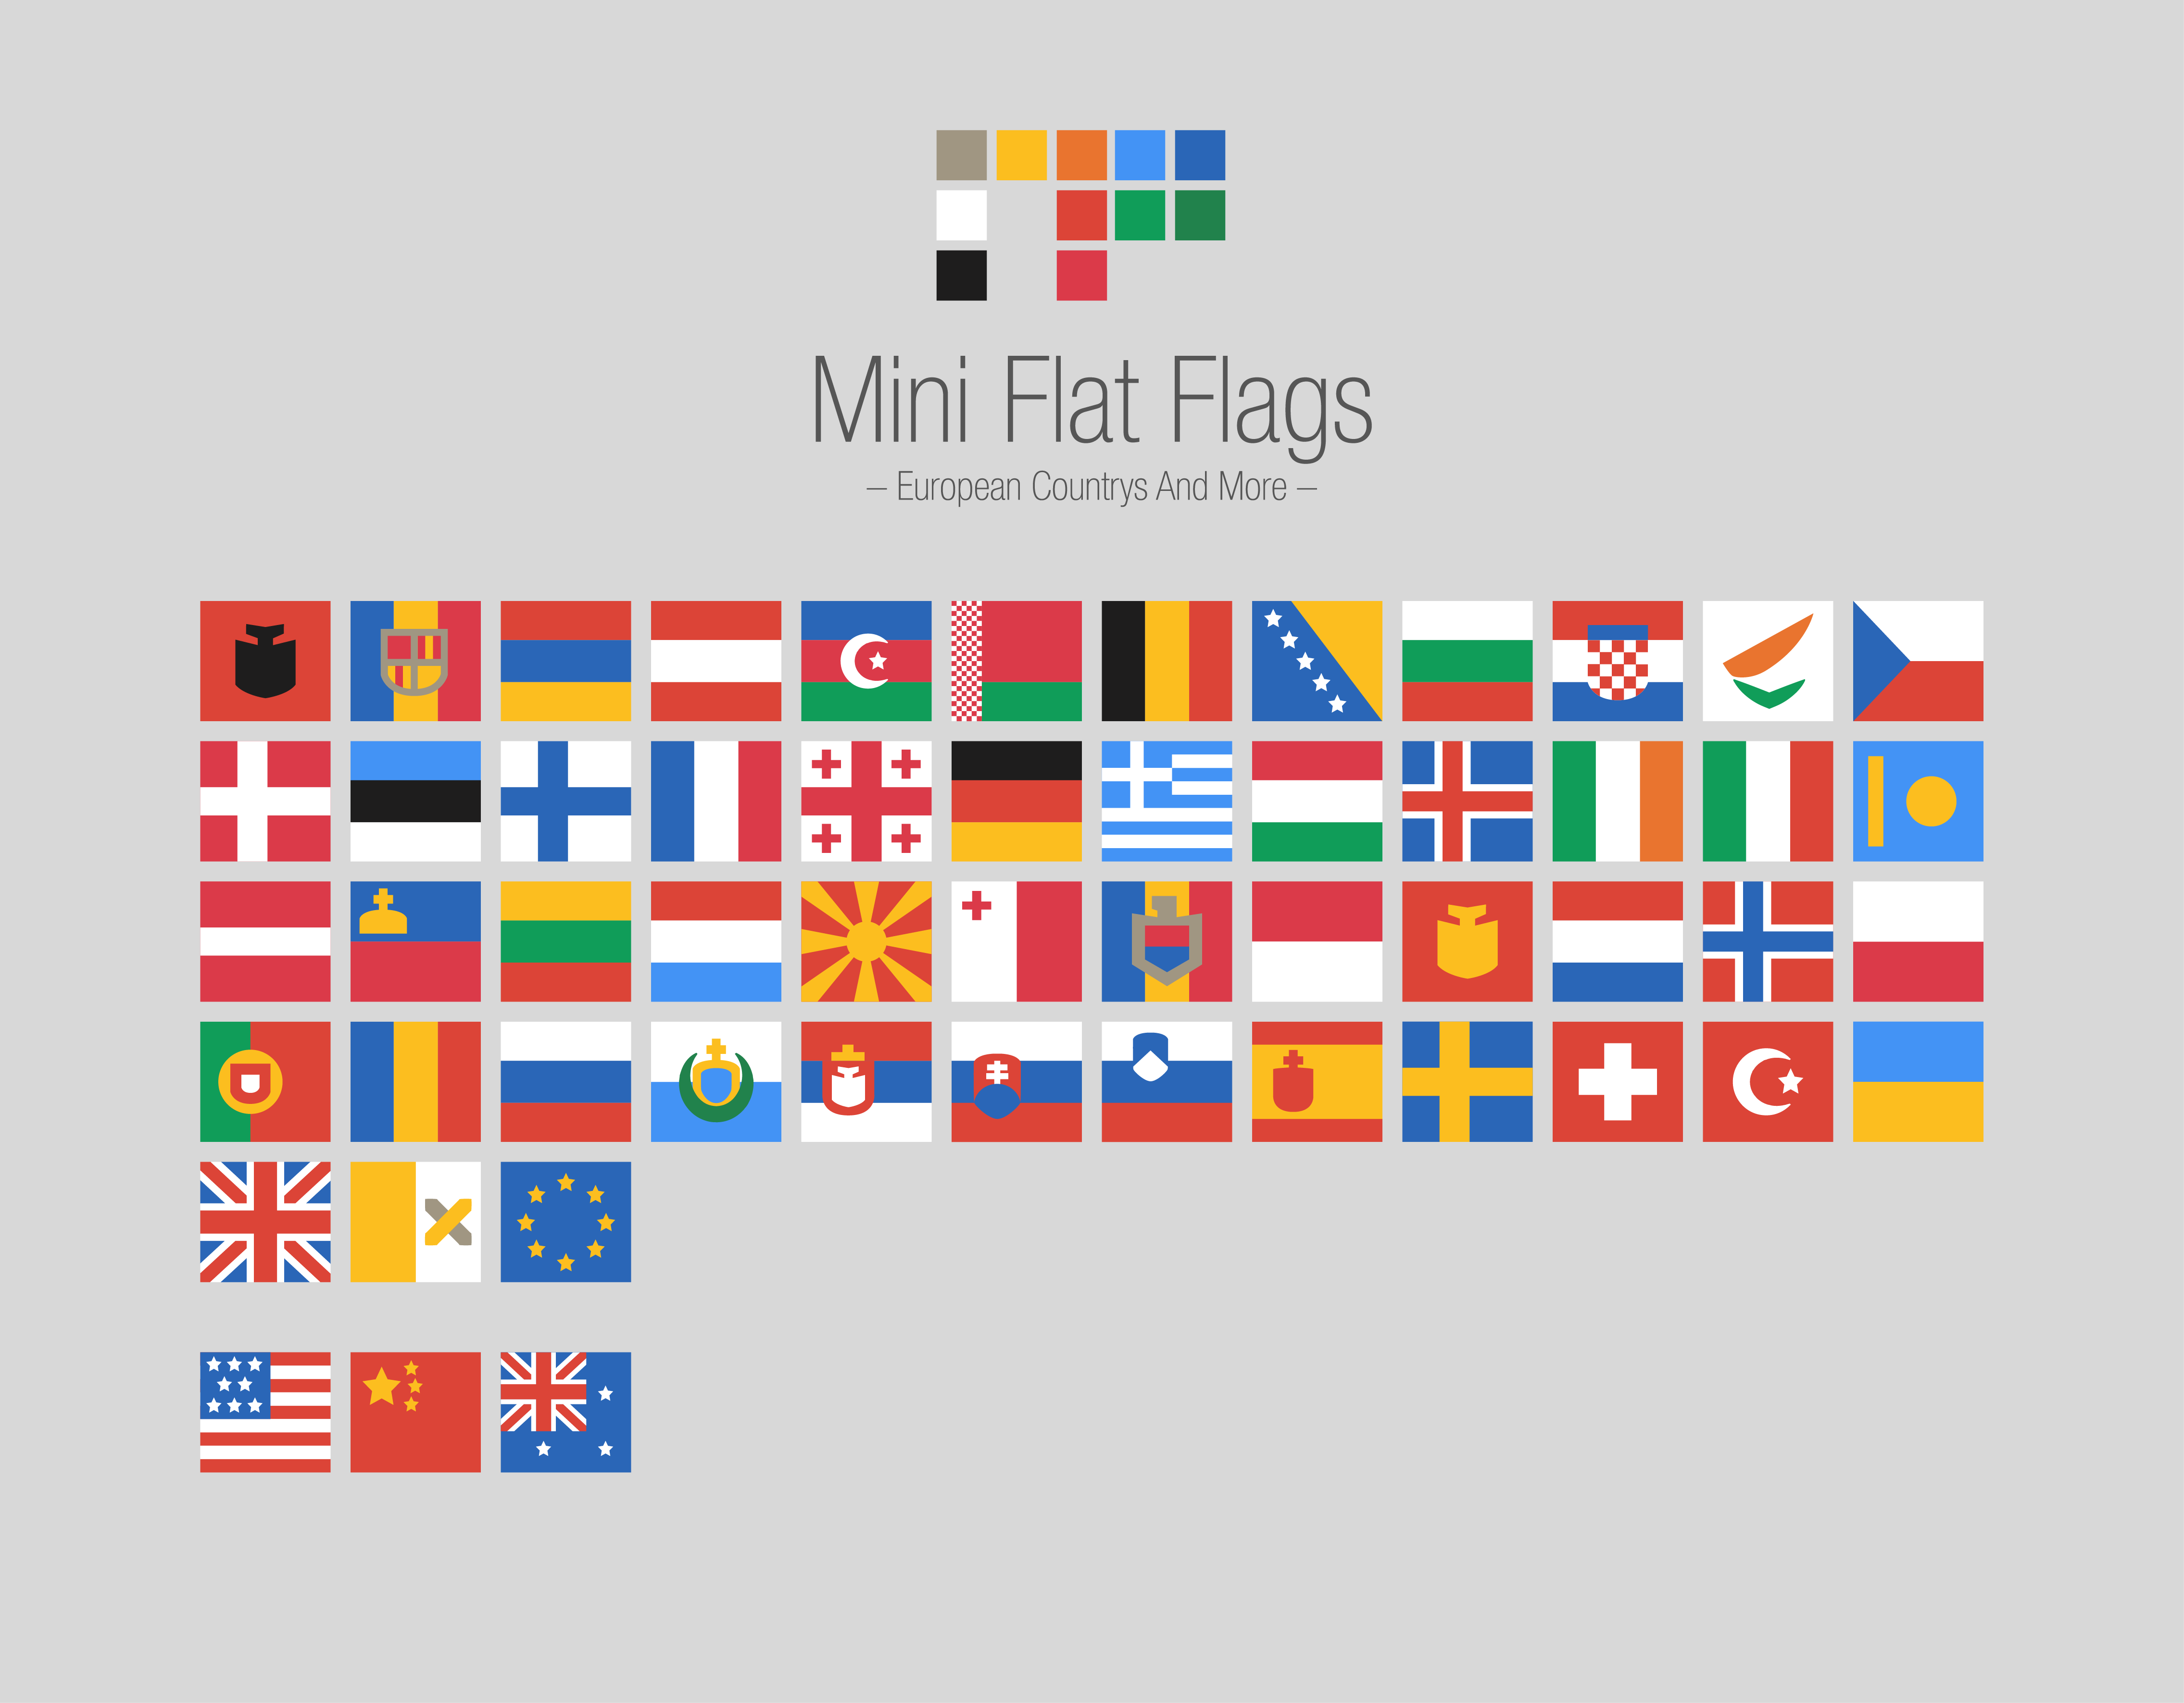 Screenshot of the icon set Mini Flat Flags